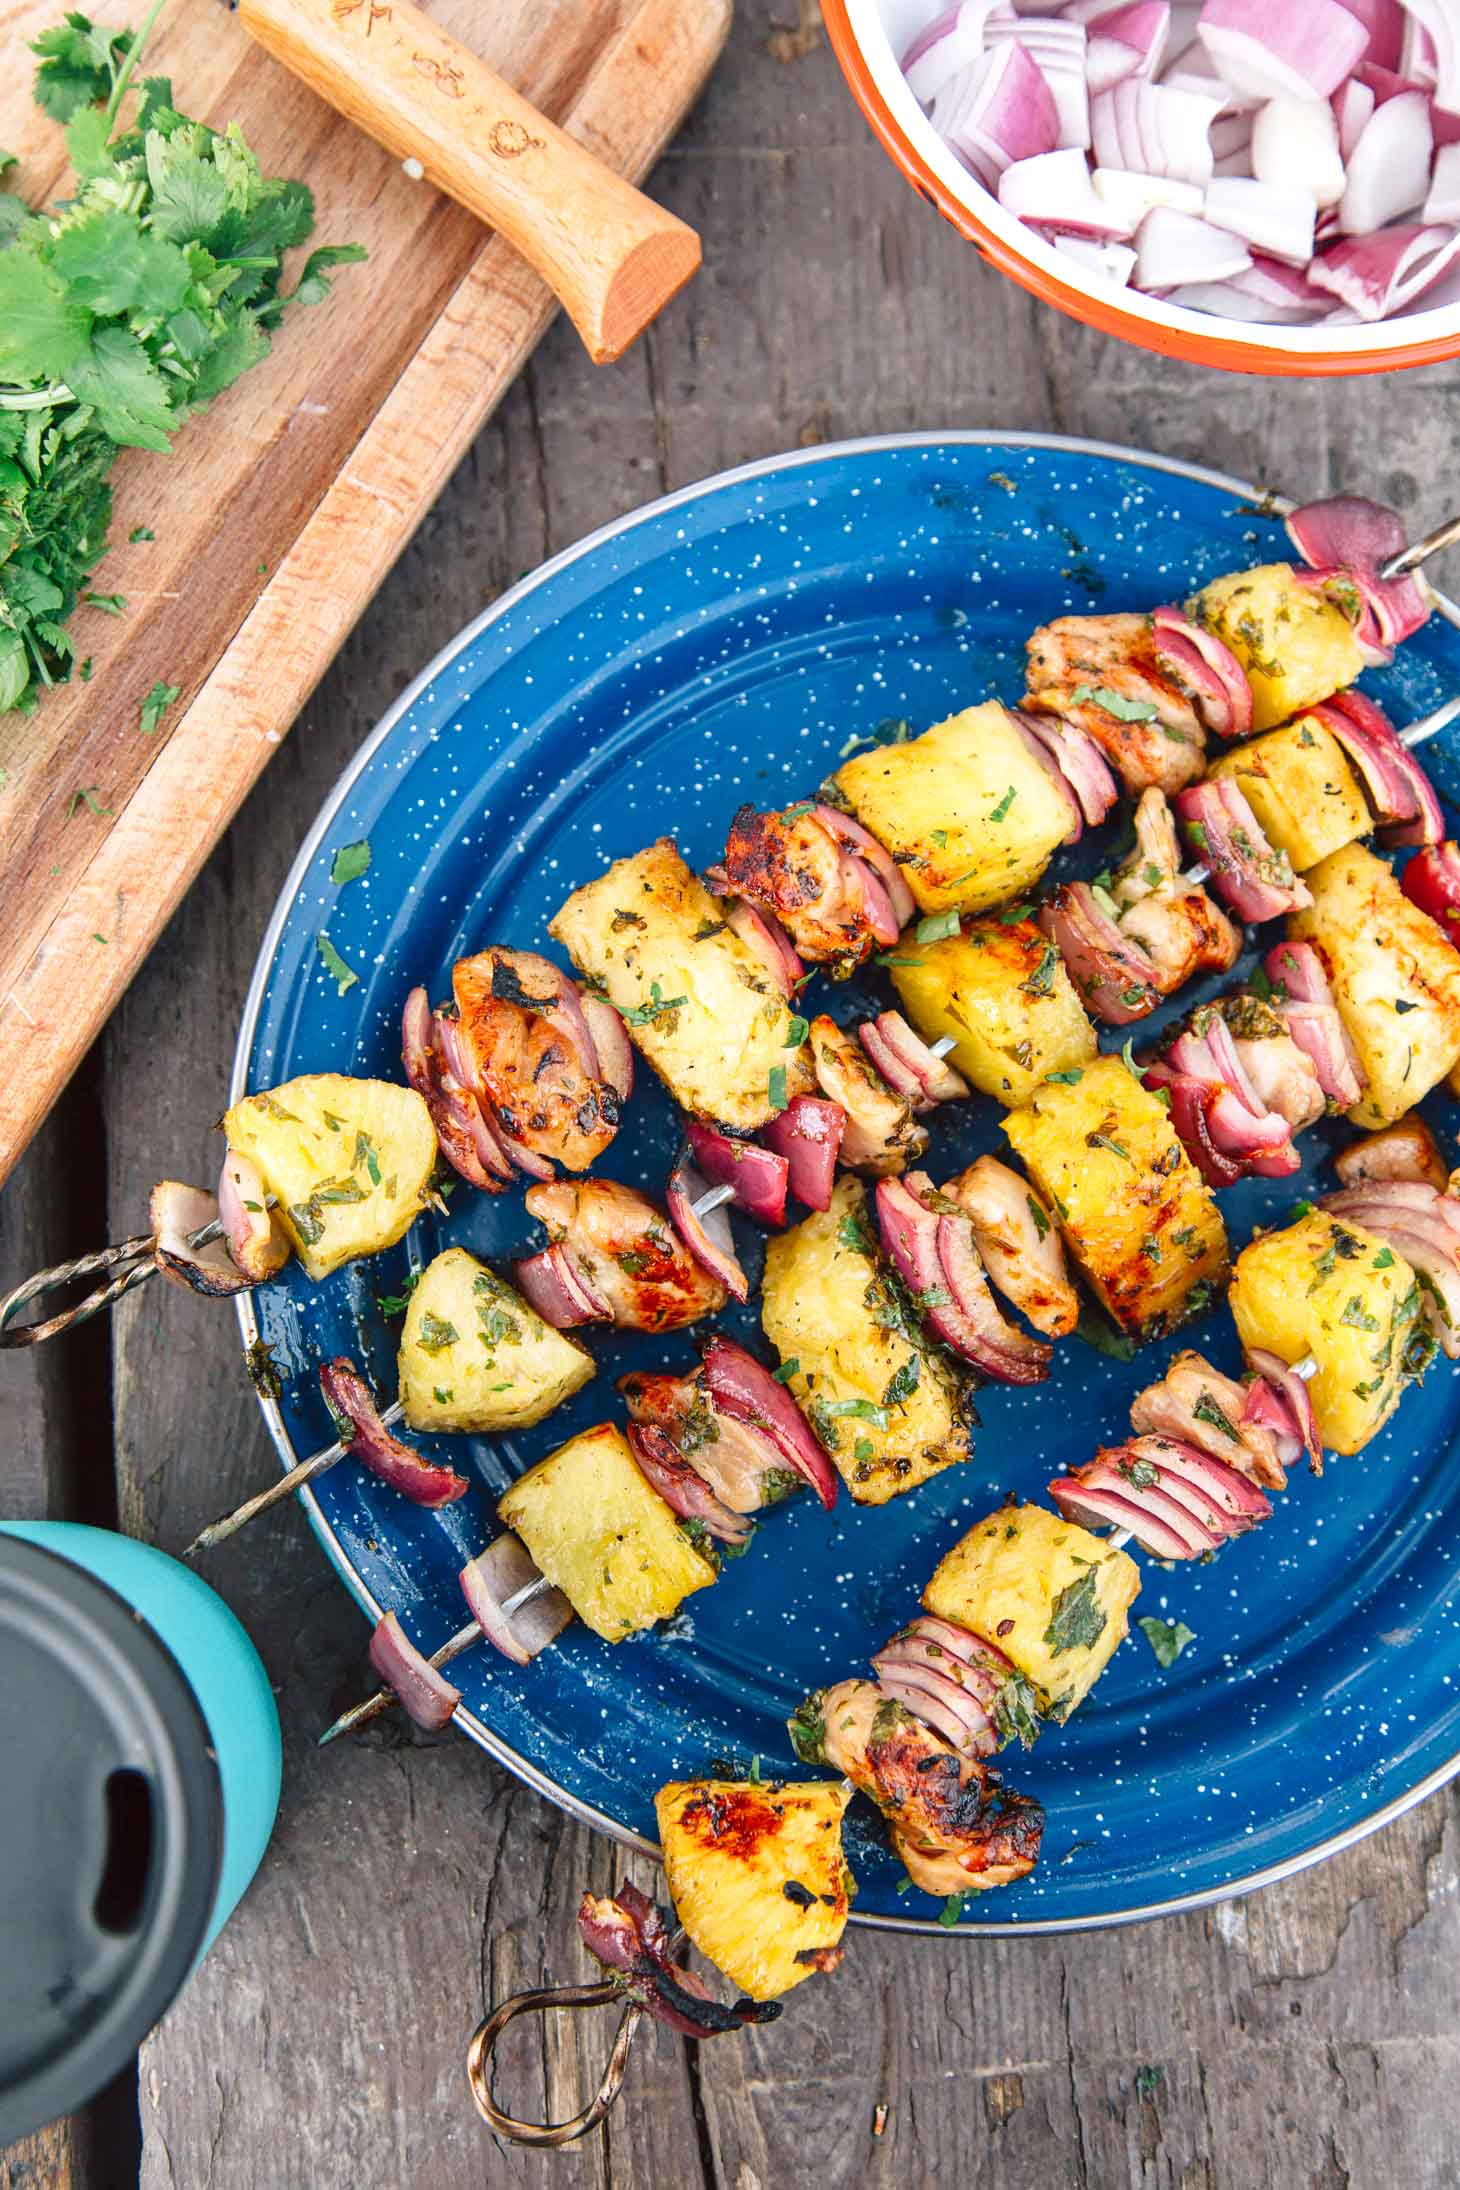 Grilled chicken pineapple kabobs on a blue camping plate